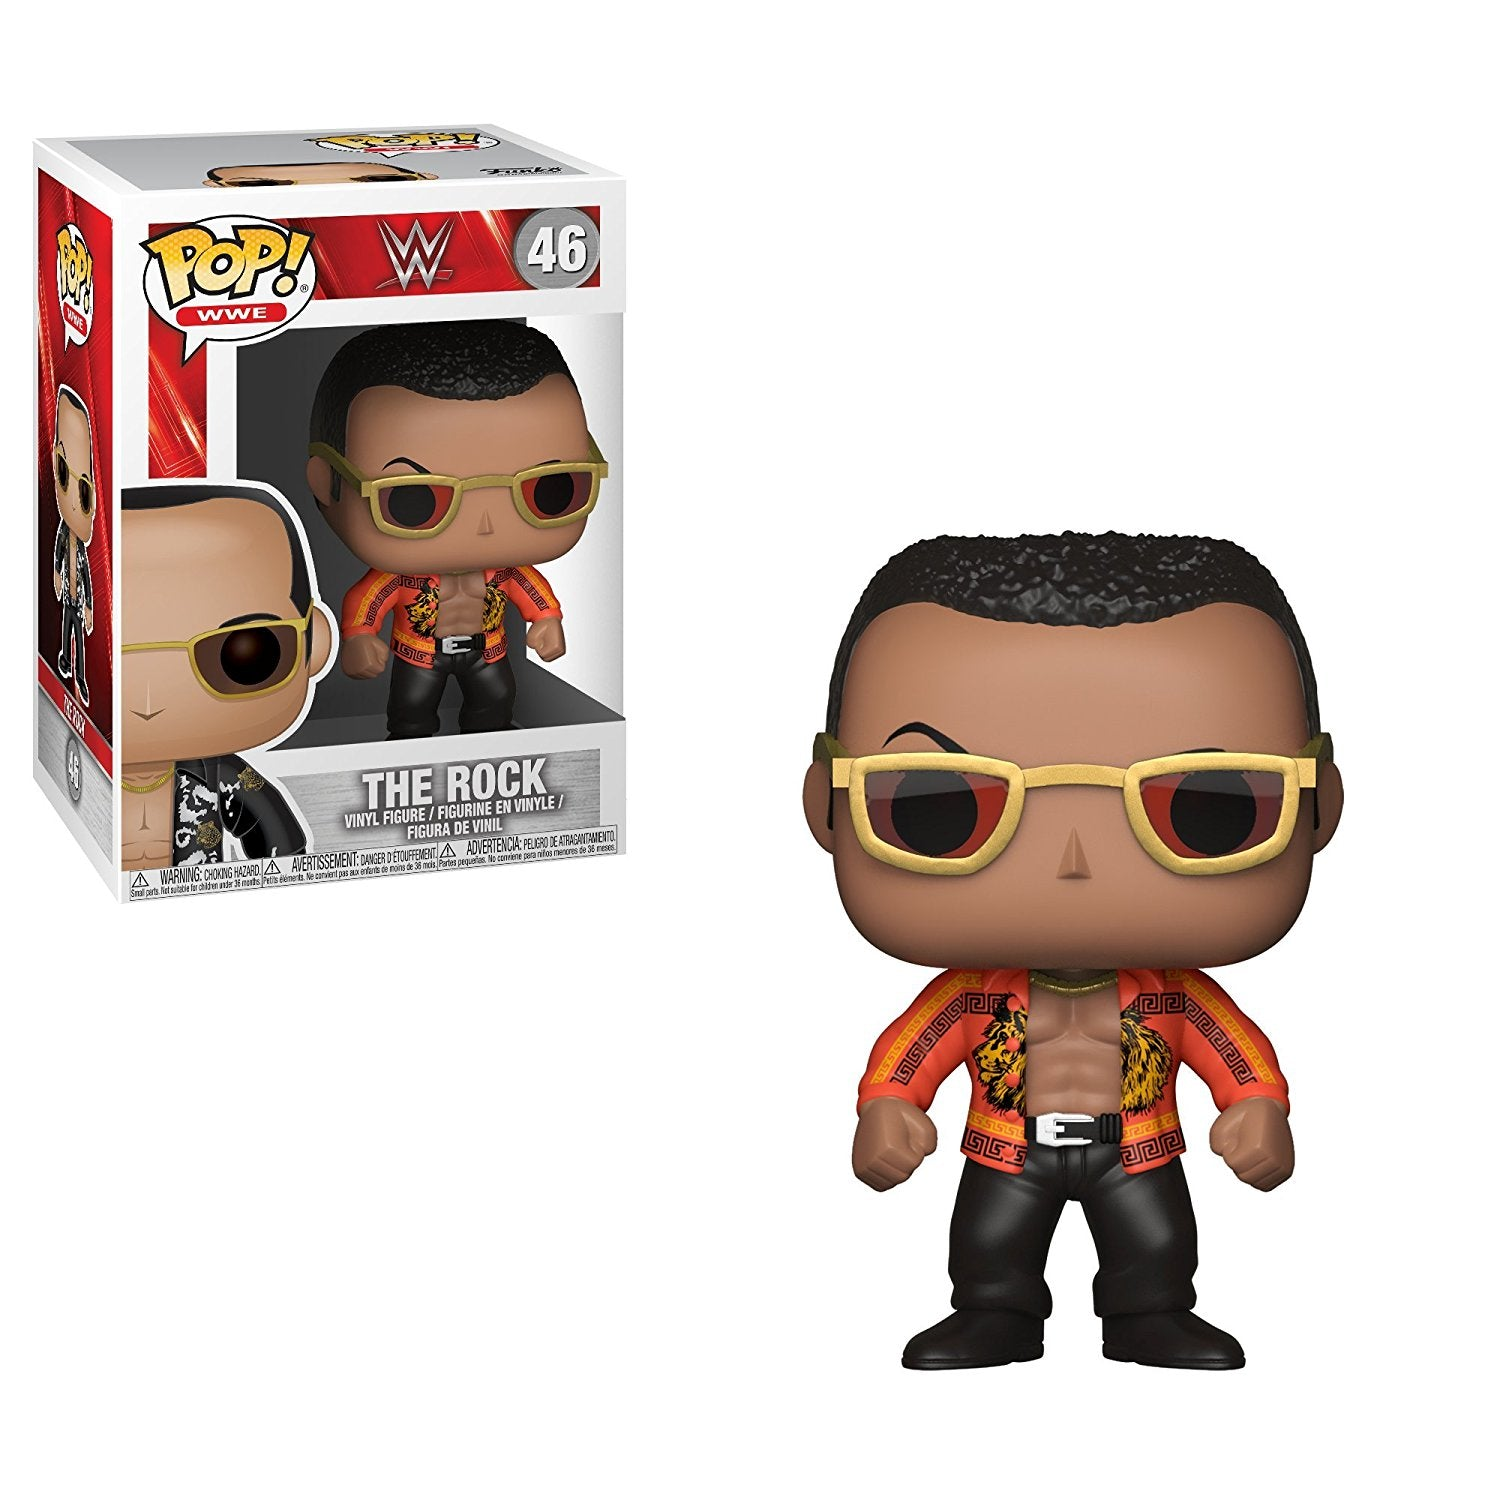 WWE Pop! Vinyl Figure The Rock Old School [46] - Fugitive Toys